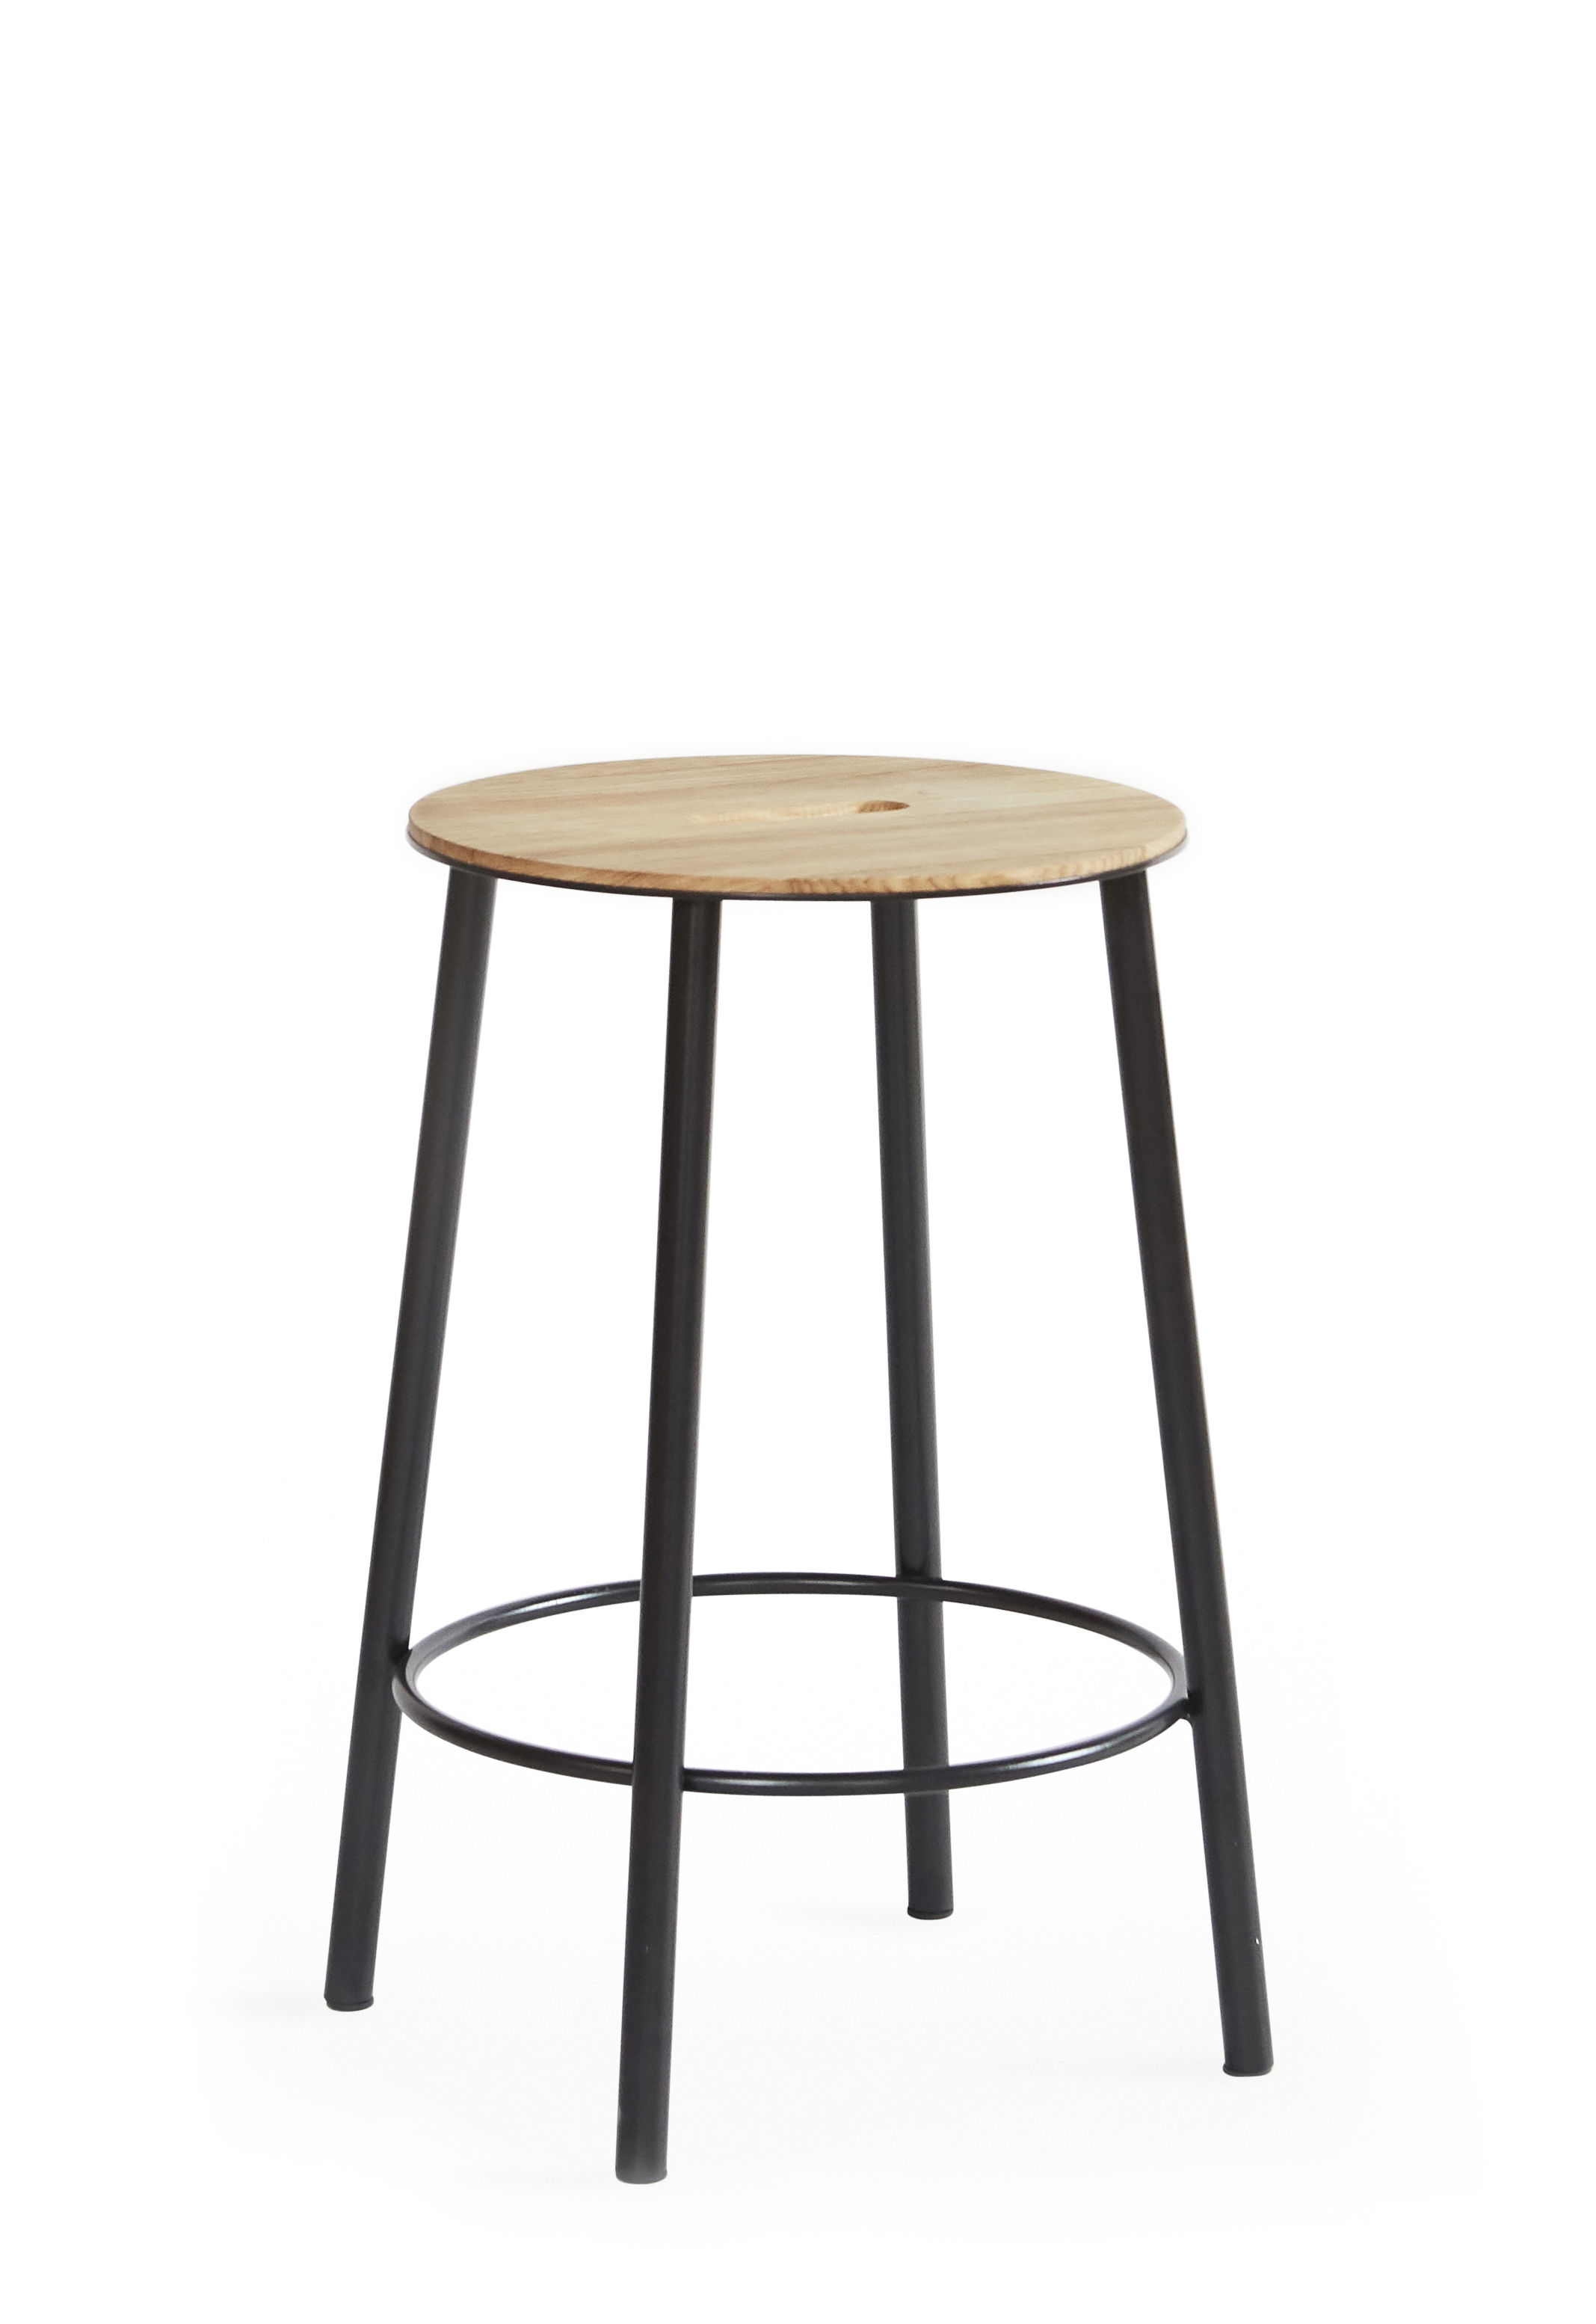 Furniture - Stools - Adam R031 Stool - / H 50 cm by Frama  - Oak & black - Epoxy lacquered steel, Oiled oak